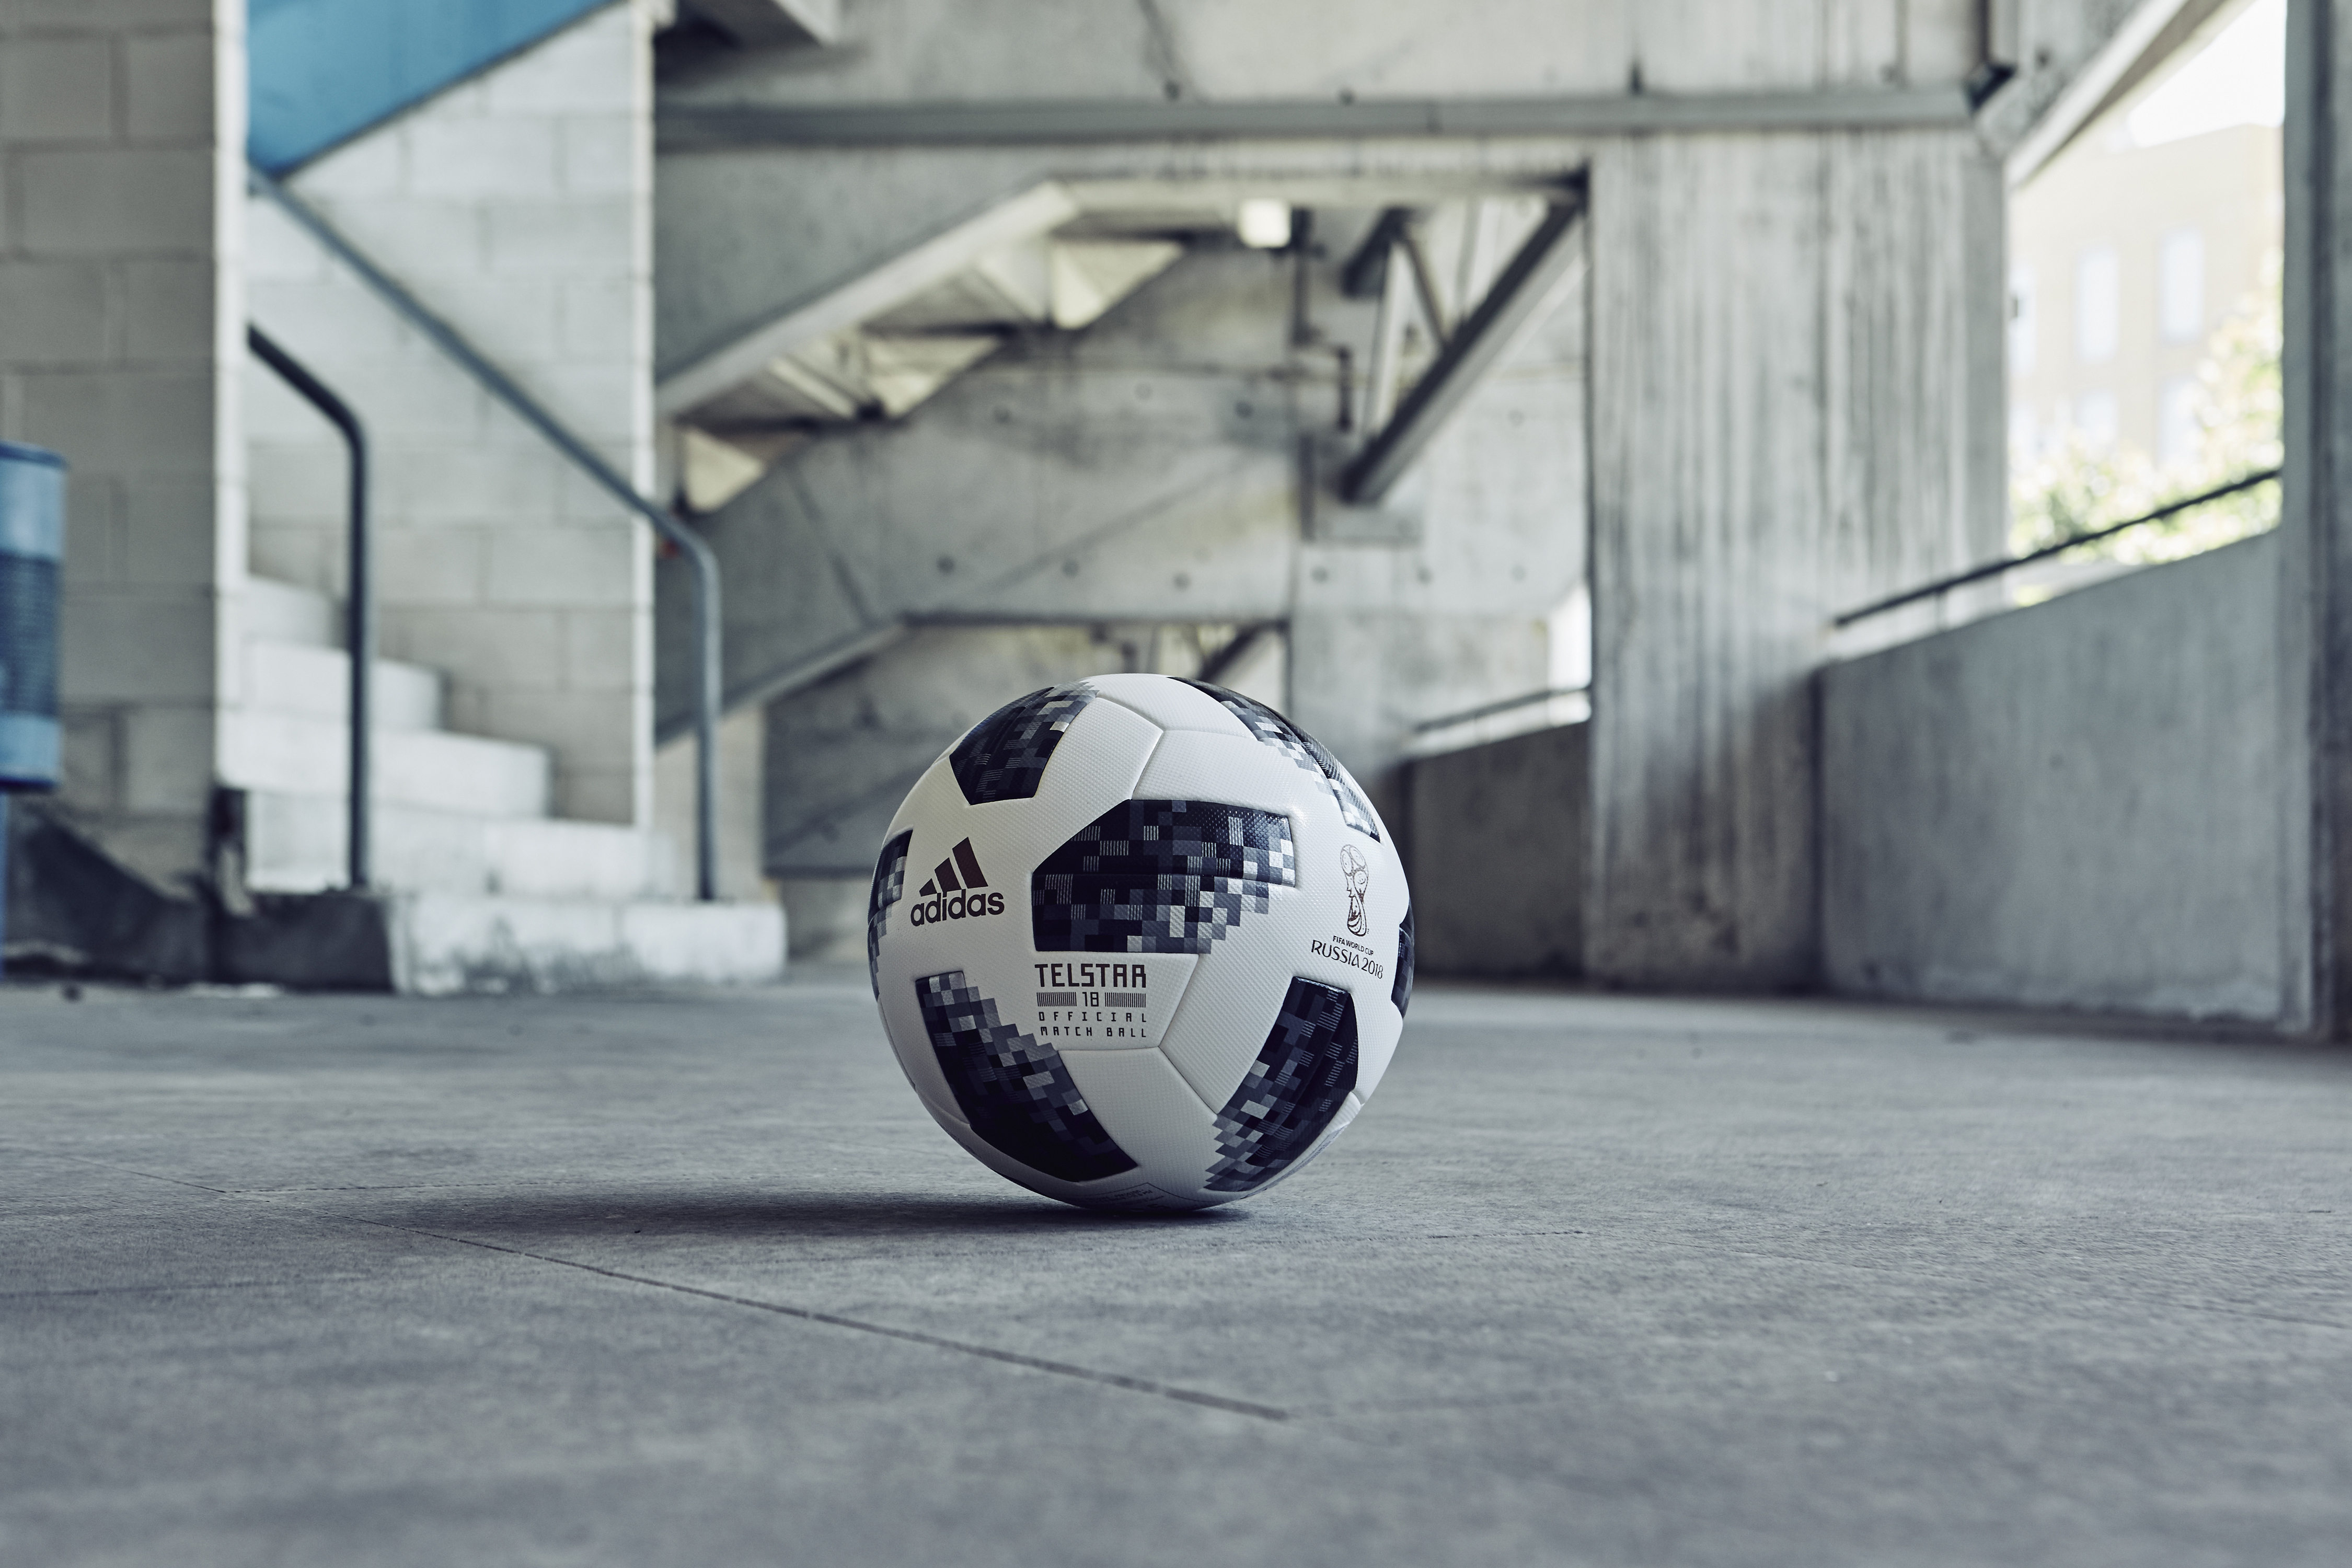 Satellites and microchips: the surprising tech behind the World Cup ball satellites-and-microchips-the-surprising-tech-behind-the-world-cup-ball